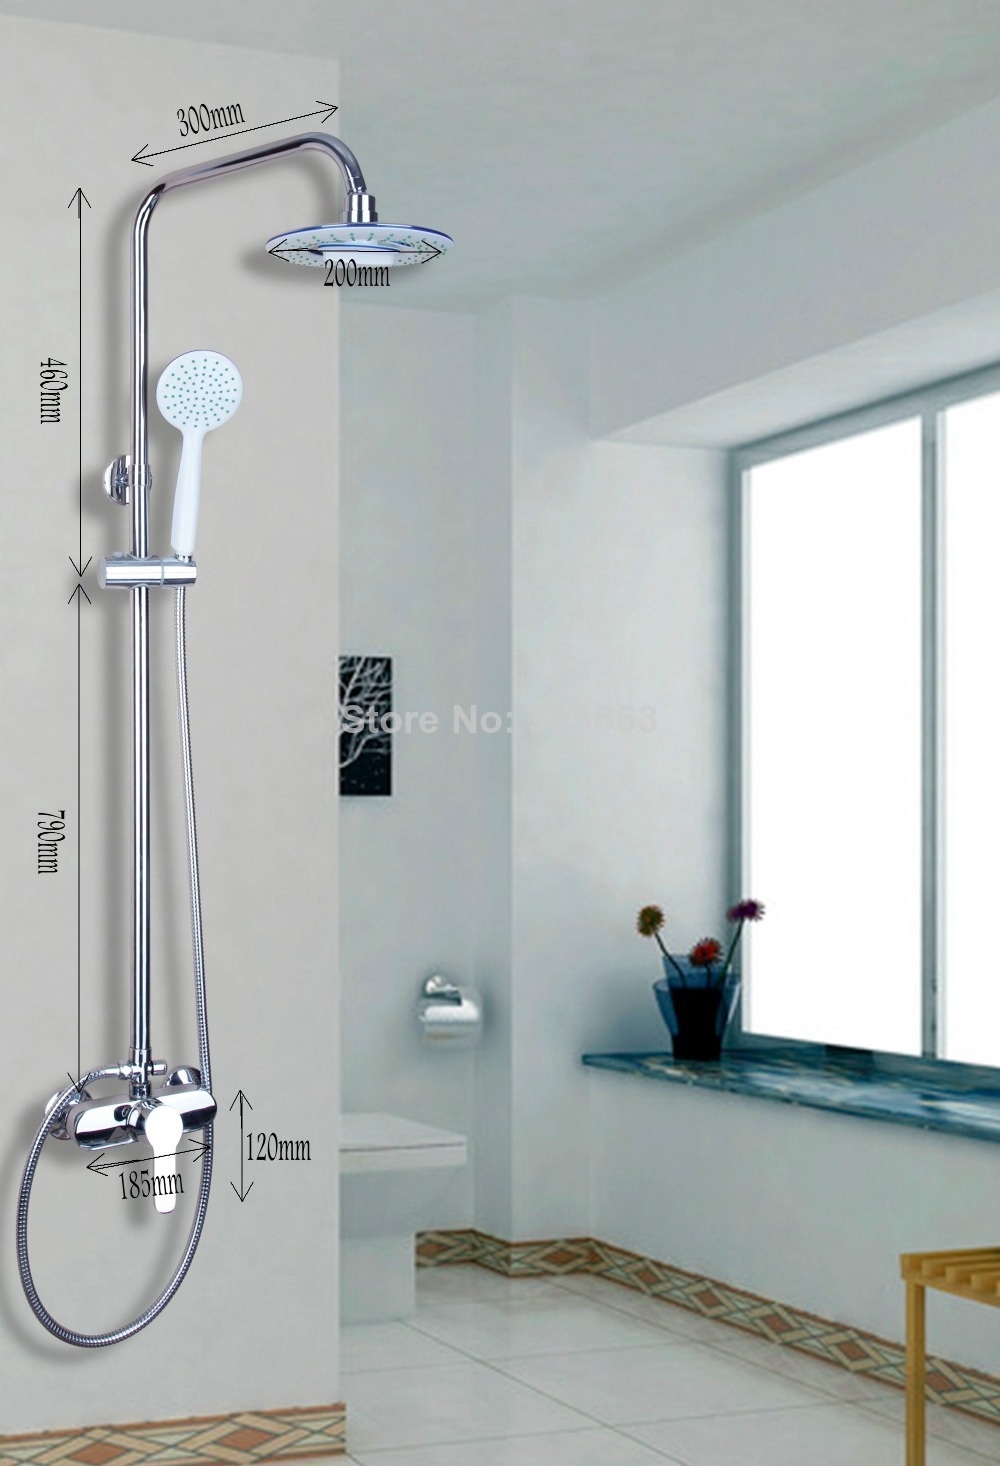 53609 New Bathroom Rain Shower System Hand Shower Head Tub Spout Set ...